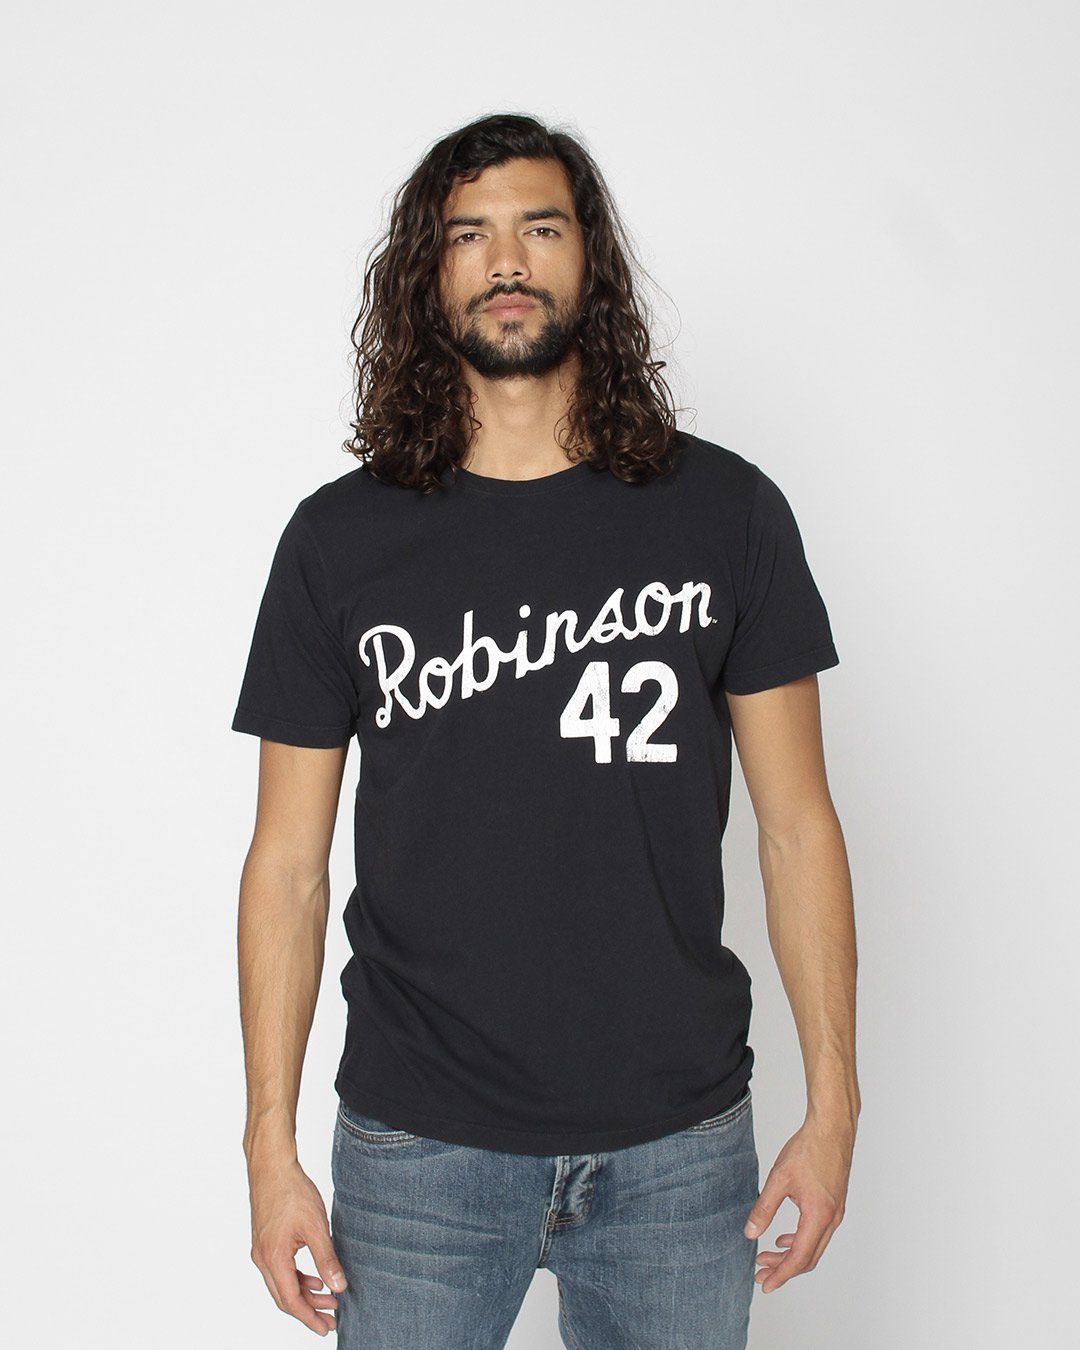 Jackie Robinson # 42 Classic Tee - Roots of Inc dba Roots of Fight